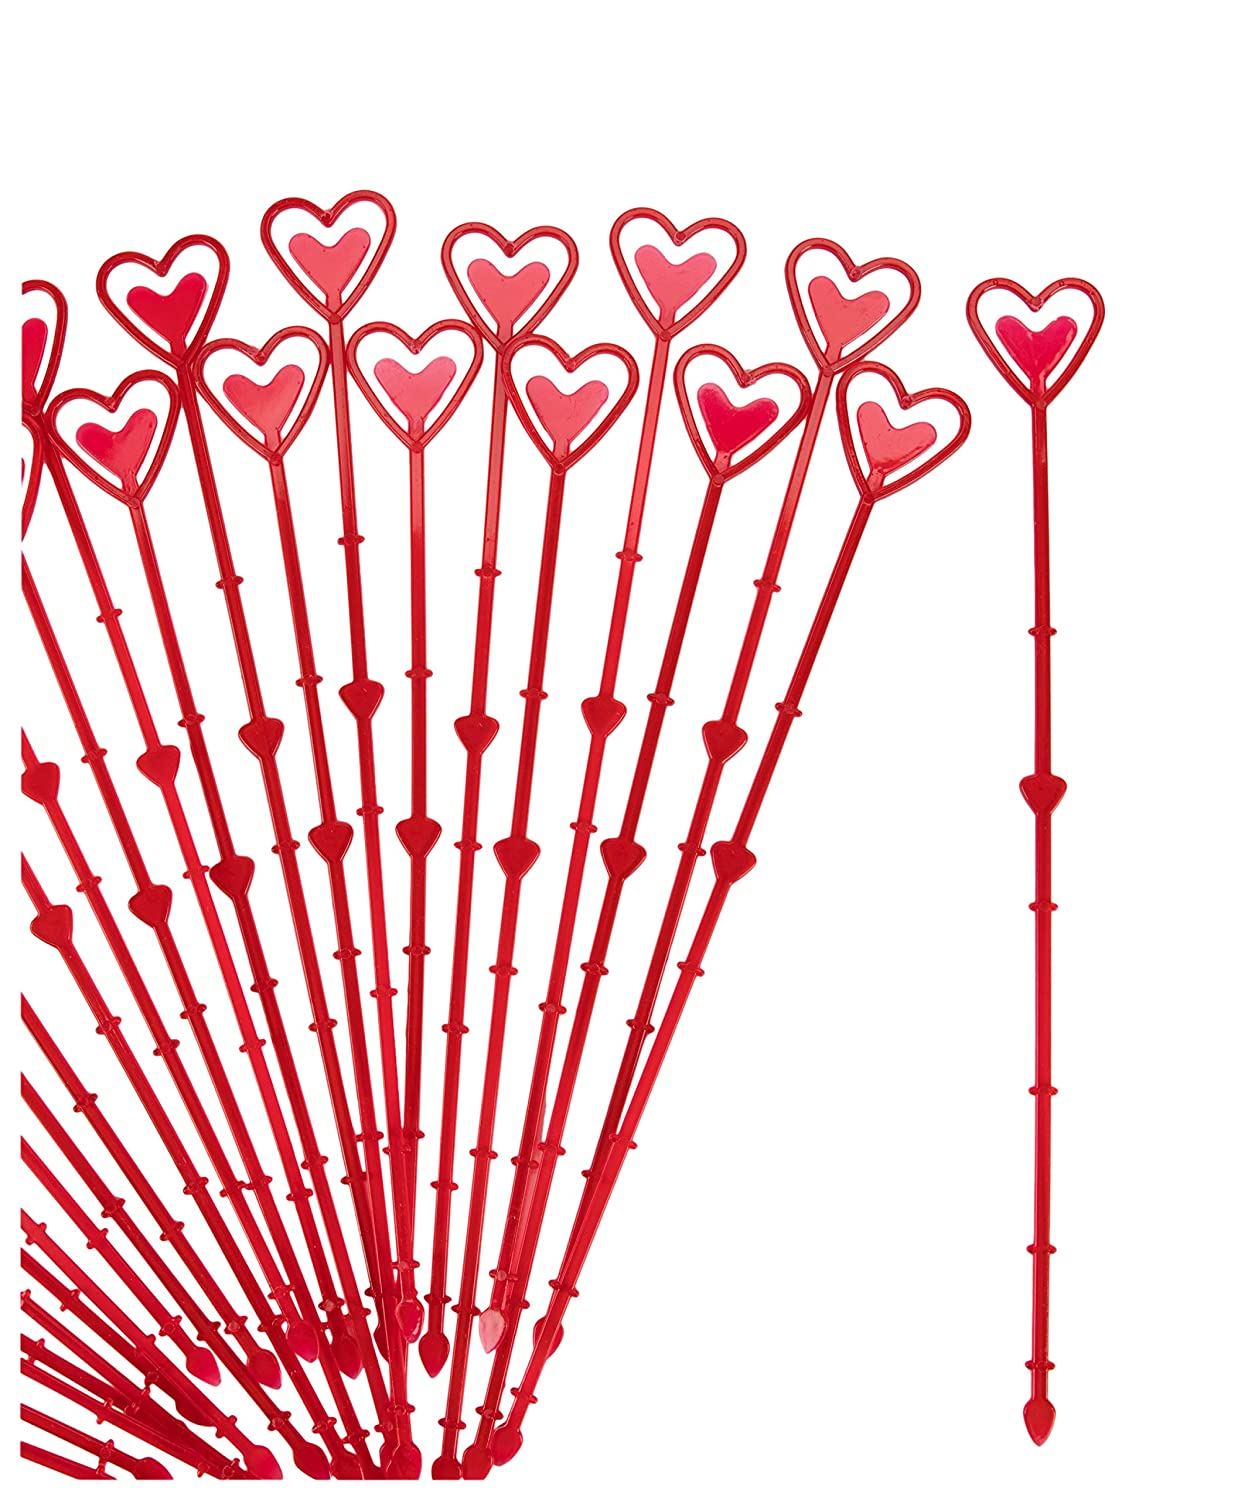 Floral Picks - 150-Pack Heart-Shaped Plastic Flower Arrangement Picks, Card Cardette Holders, Perfect for Valentines Day and Anniversaries, Transparent, 13.4 inches Juvale